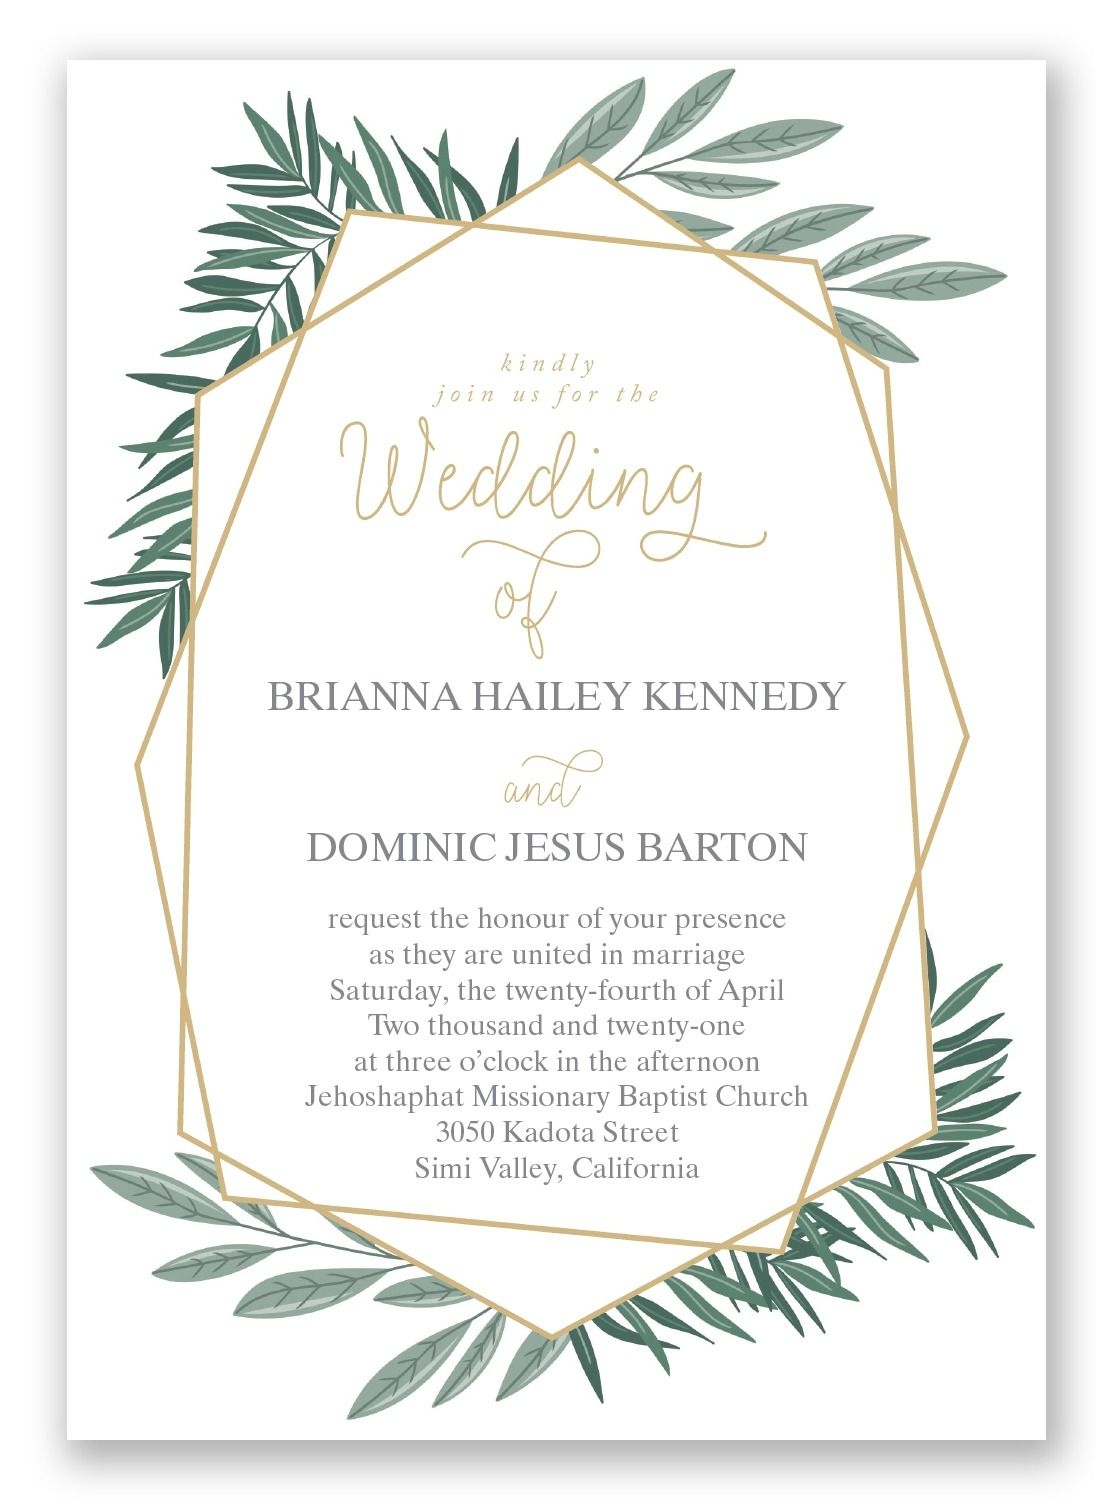 Invitation Card Template Video: Opulent Lines Wedding Invitation By Invitations By David's